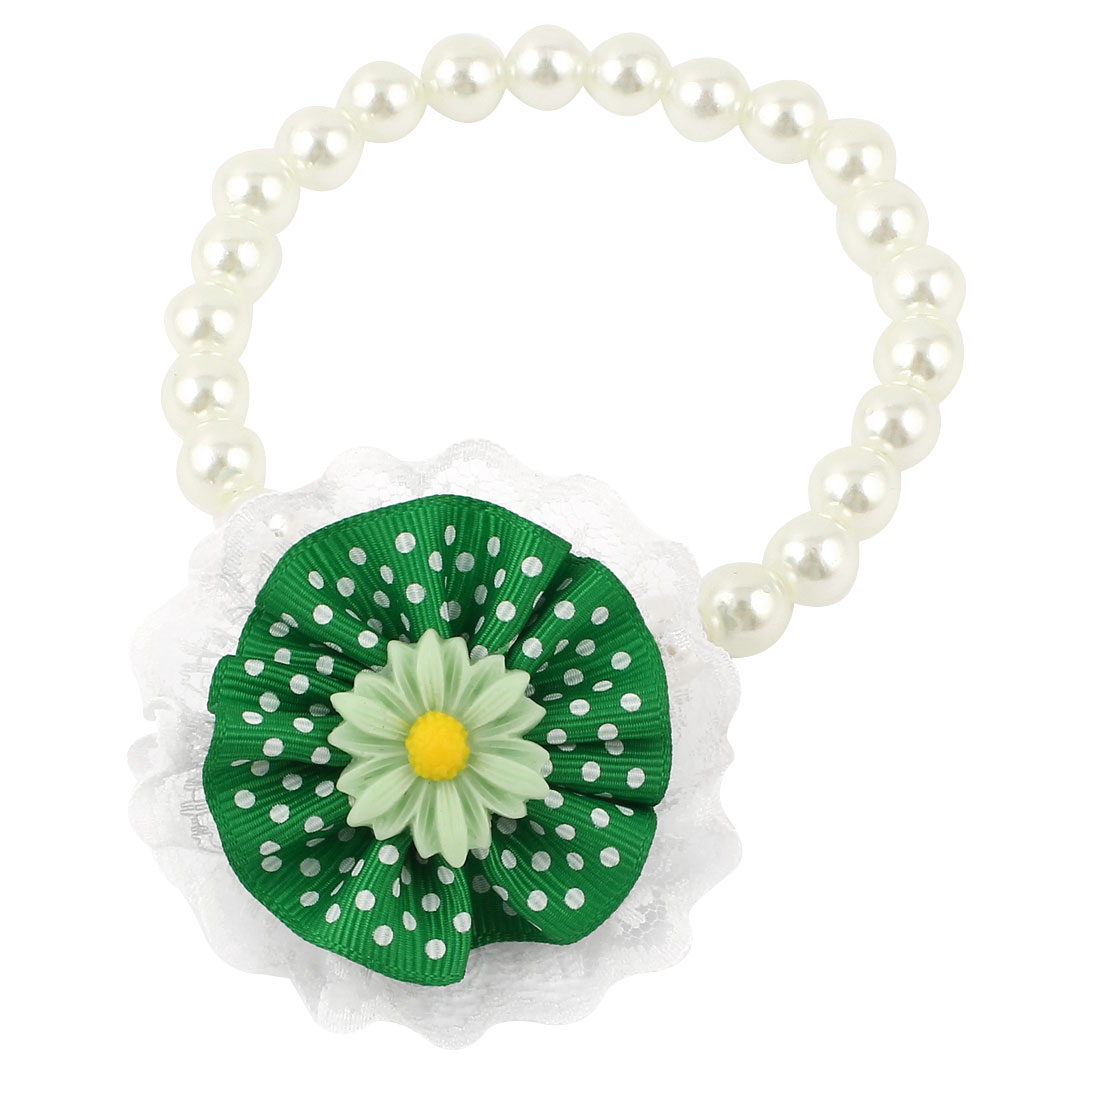 Lace Green Flower Accent Pet Dog Plastic Beads Collar Necklace White S